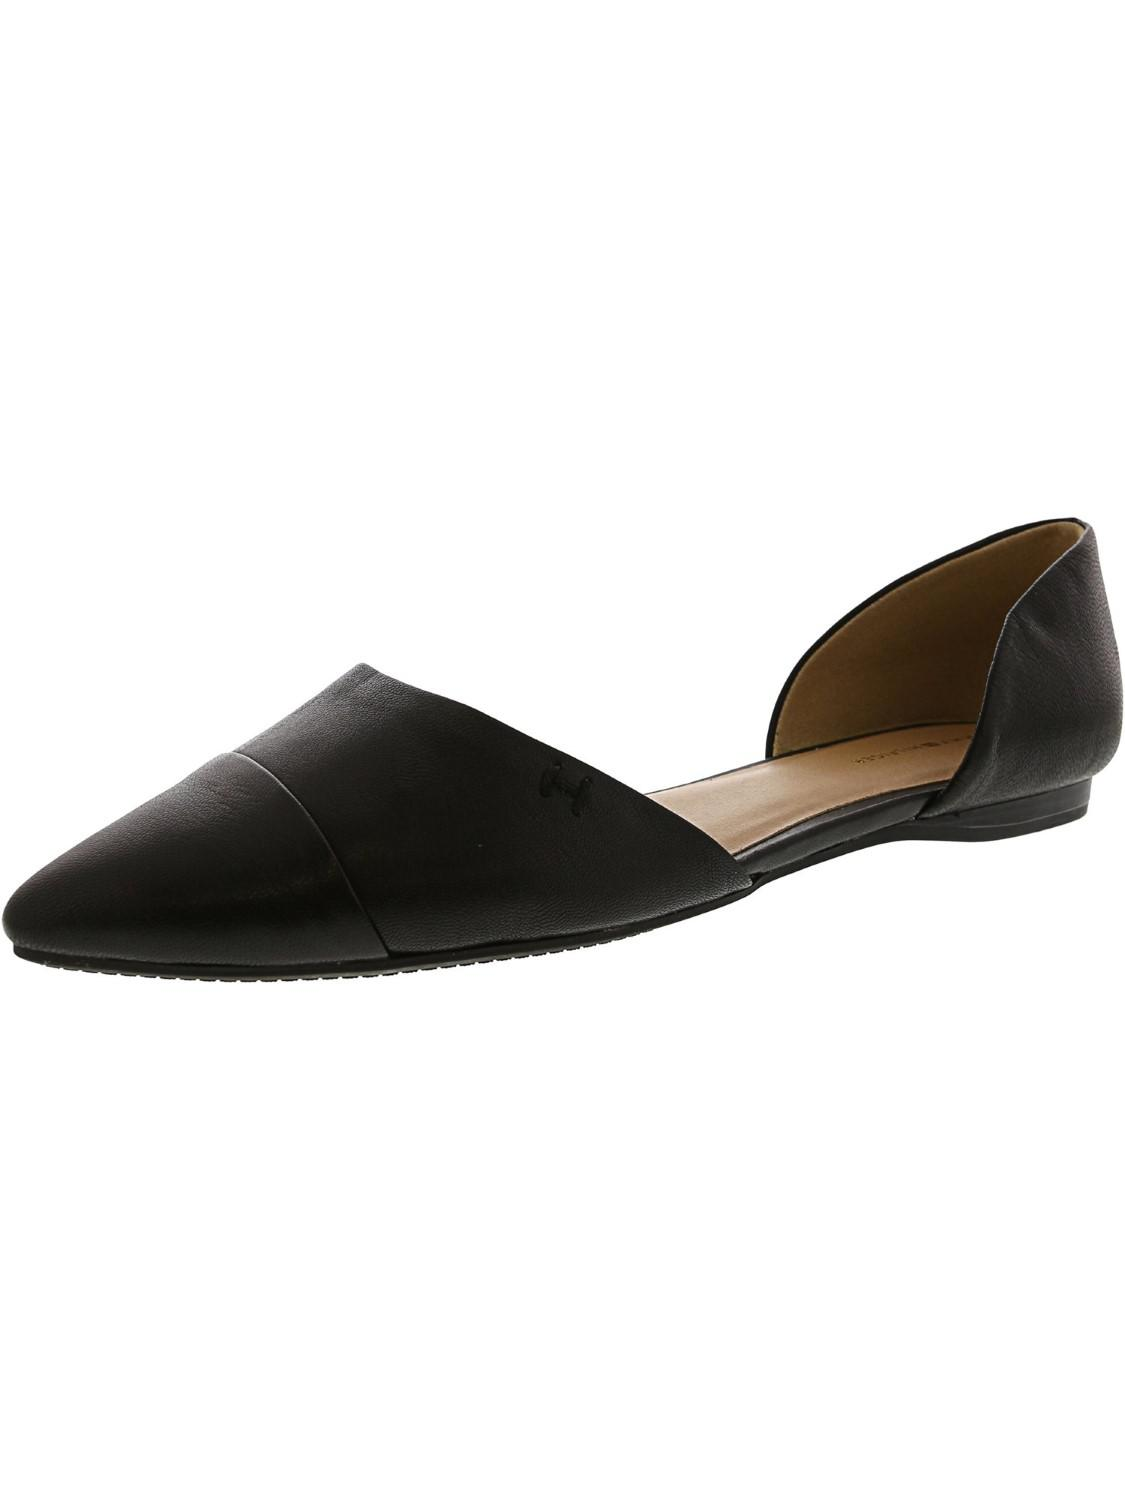 0e072ba2e Lyst - Tommy Hilfiger Naree3 Leather Flat Shoe - 7.5m in Black